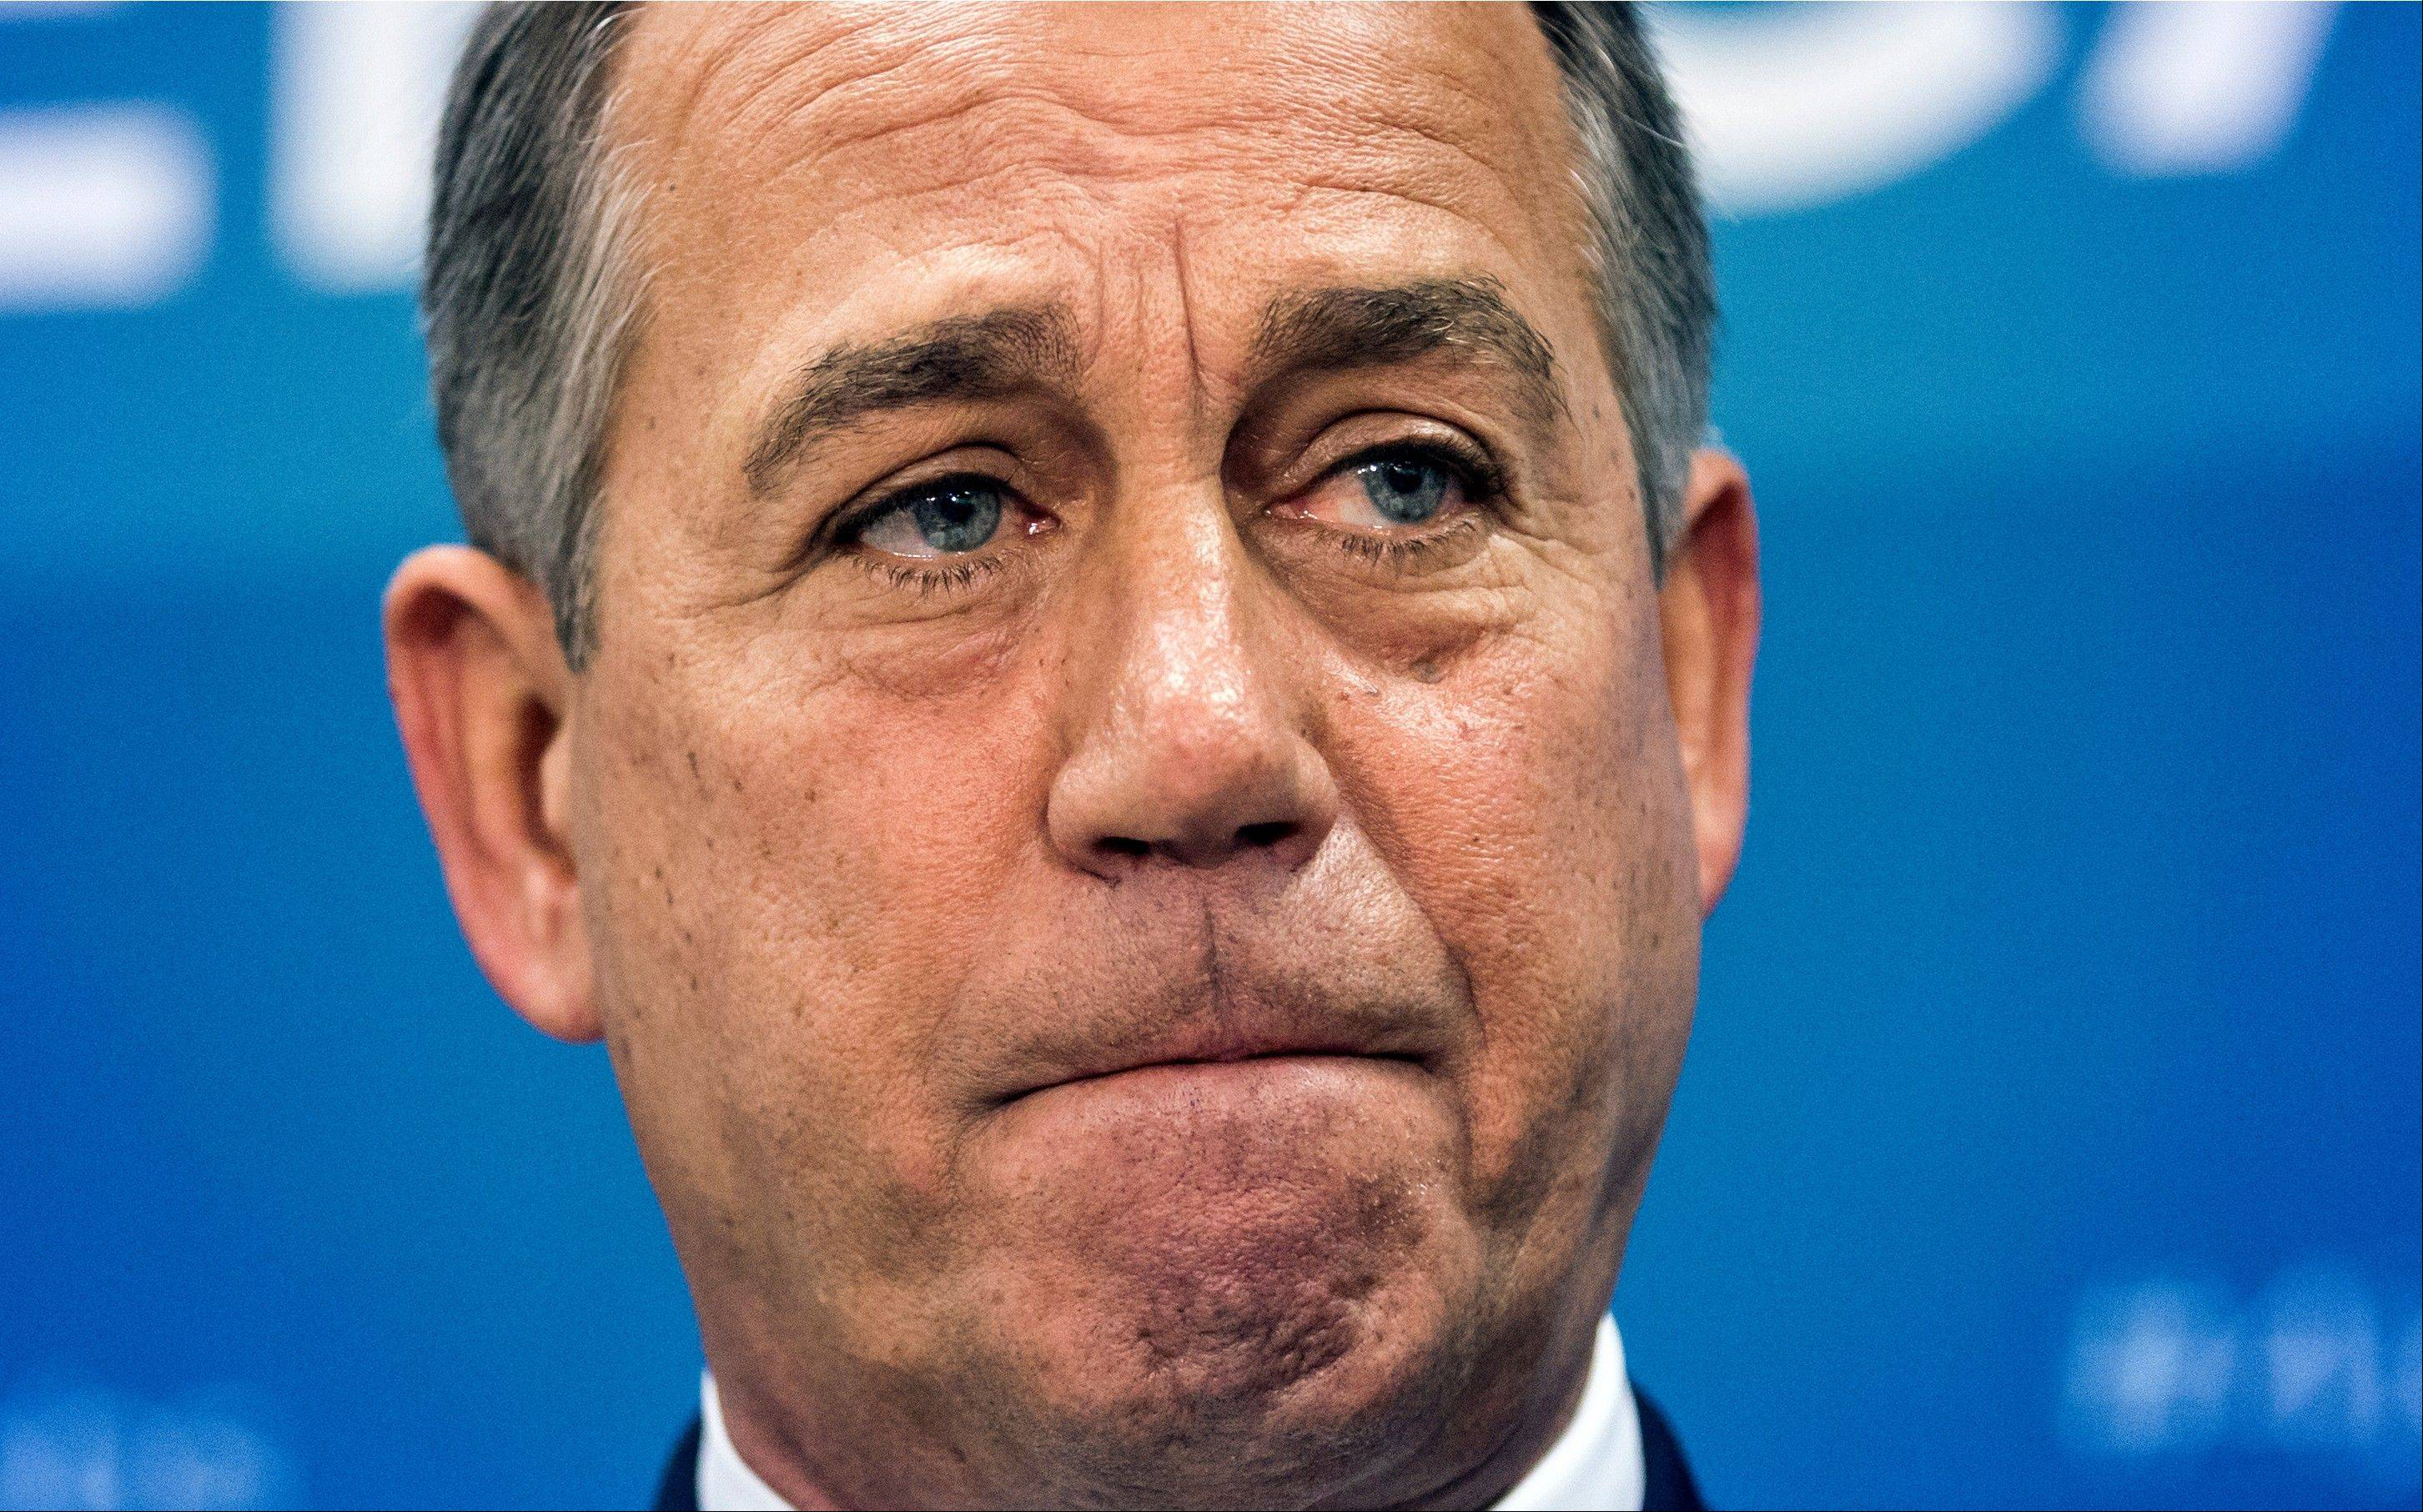 Speaker of the House John Boehner speaks with reporters after House GOP leaders looked to reverse course and agree to Tea Party demands to try to use a vote this week on a must-pass temporary government funding bill to block implementation of President Barack Obama�s health care law.